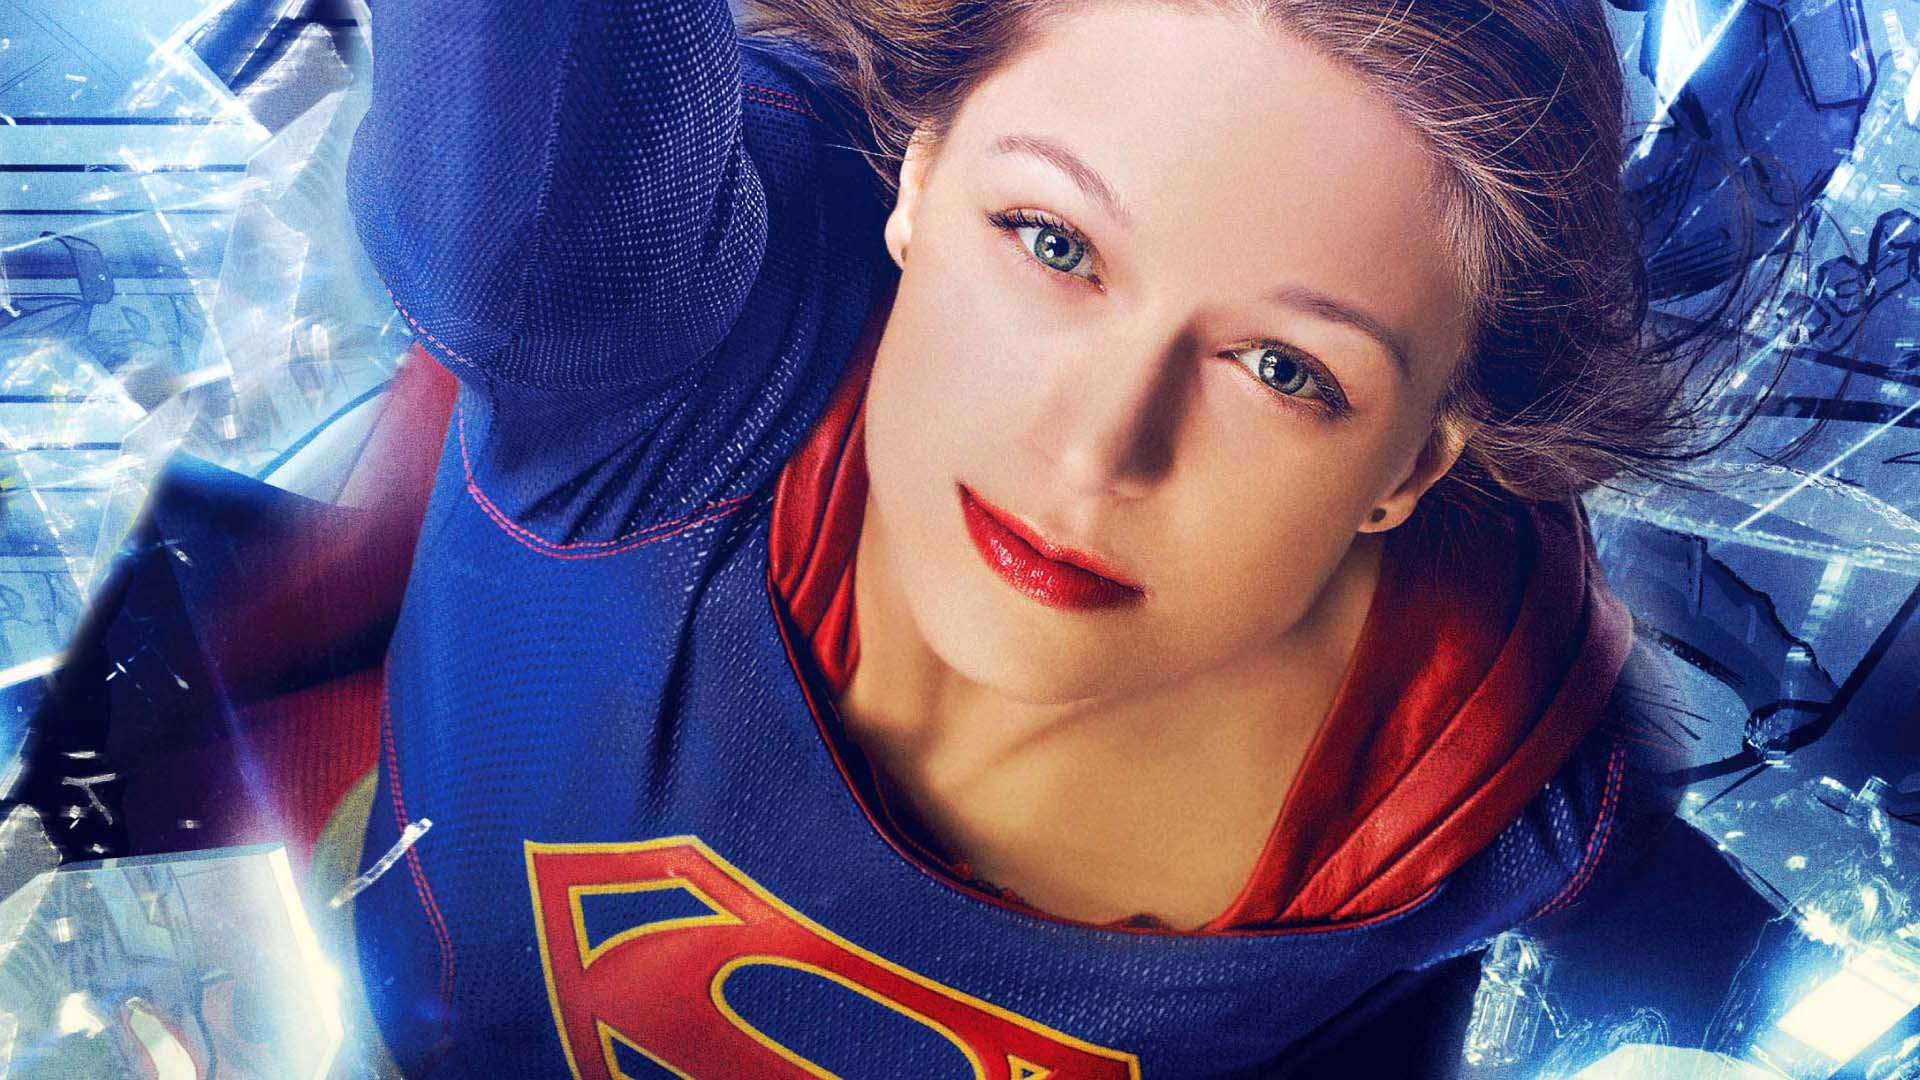 Girls Wallpapers 2015: Supergirl (2015 TV Series) Images Comic Con Wallpaper HD